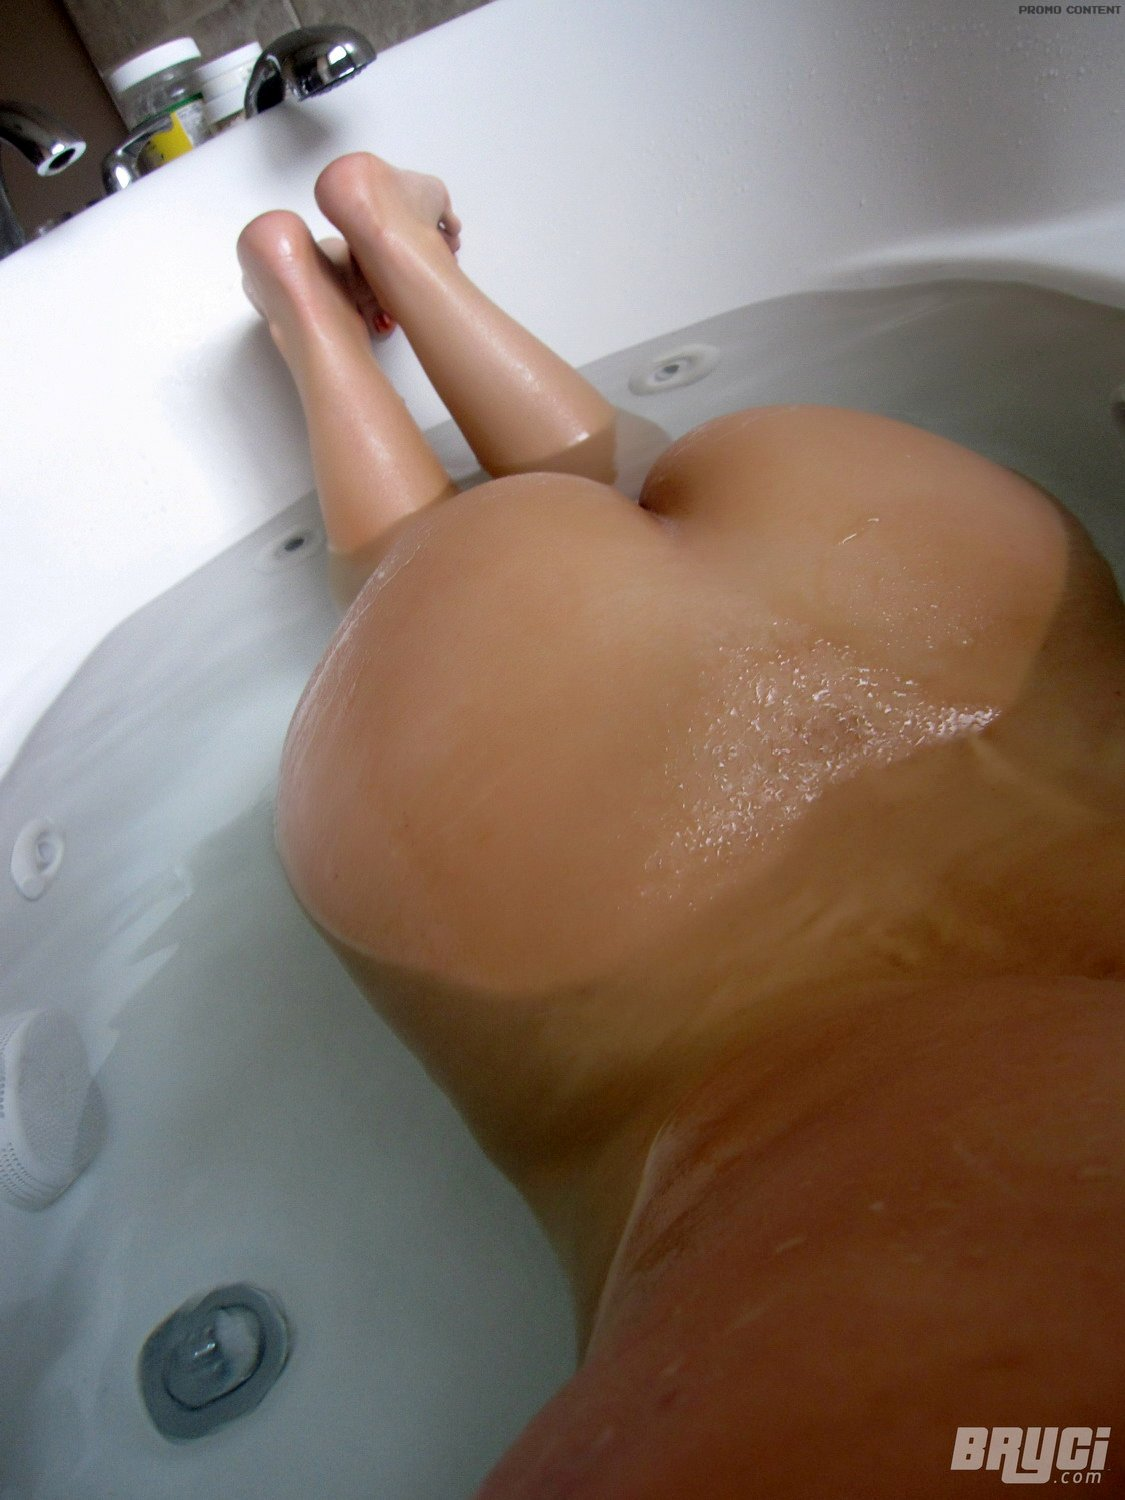 shot Brunette bathtub self